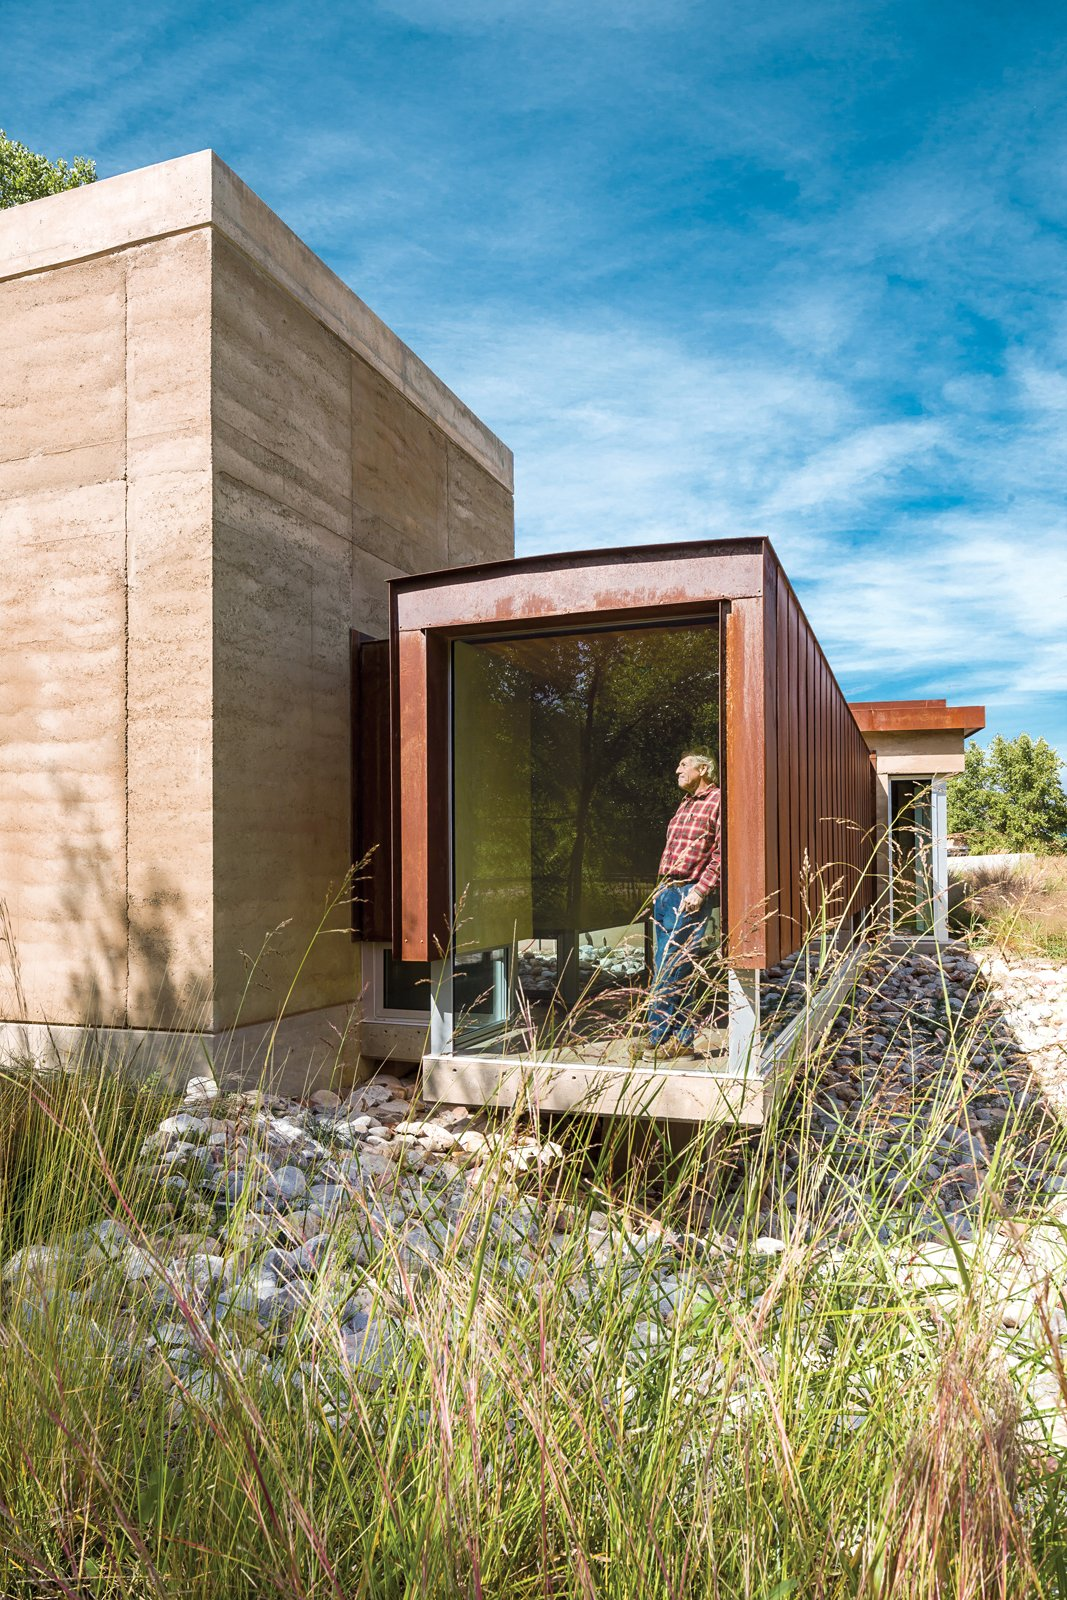 Articles about sustainable rammed earth home new mexico on Dwell.com